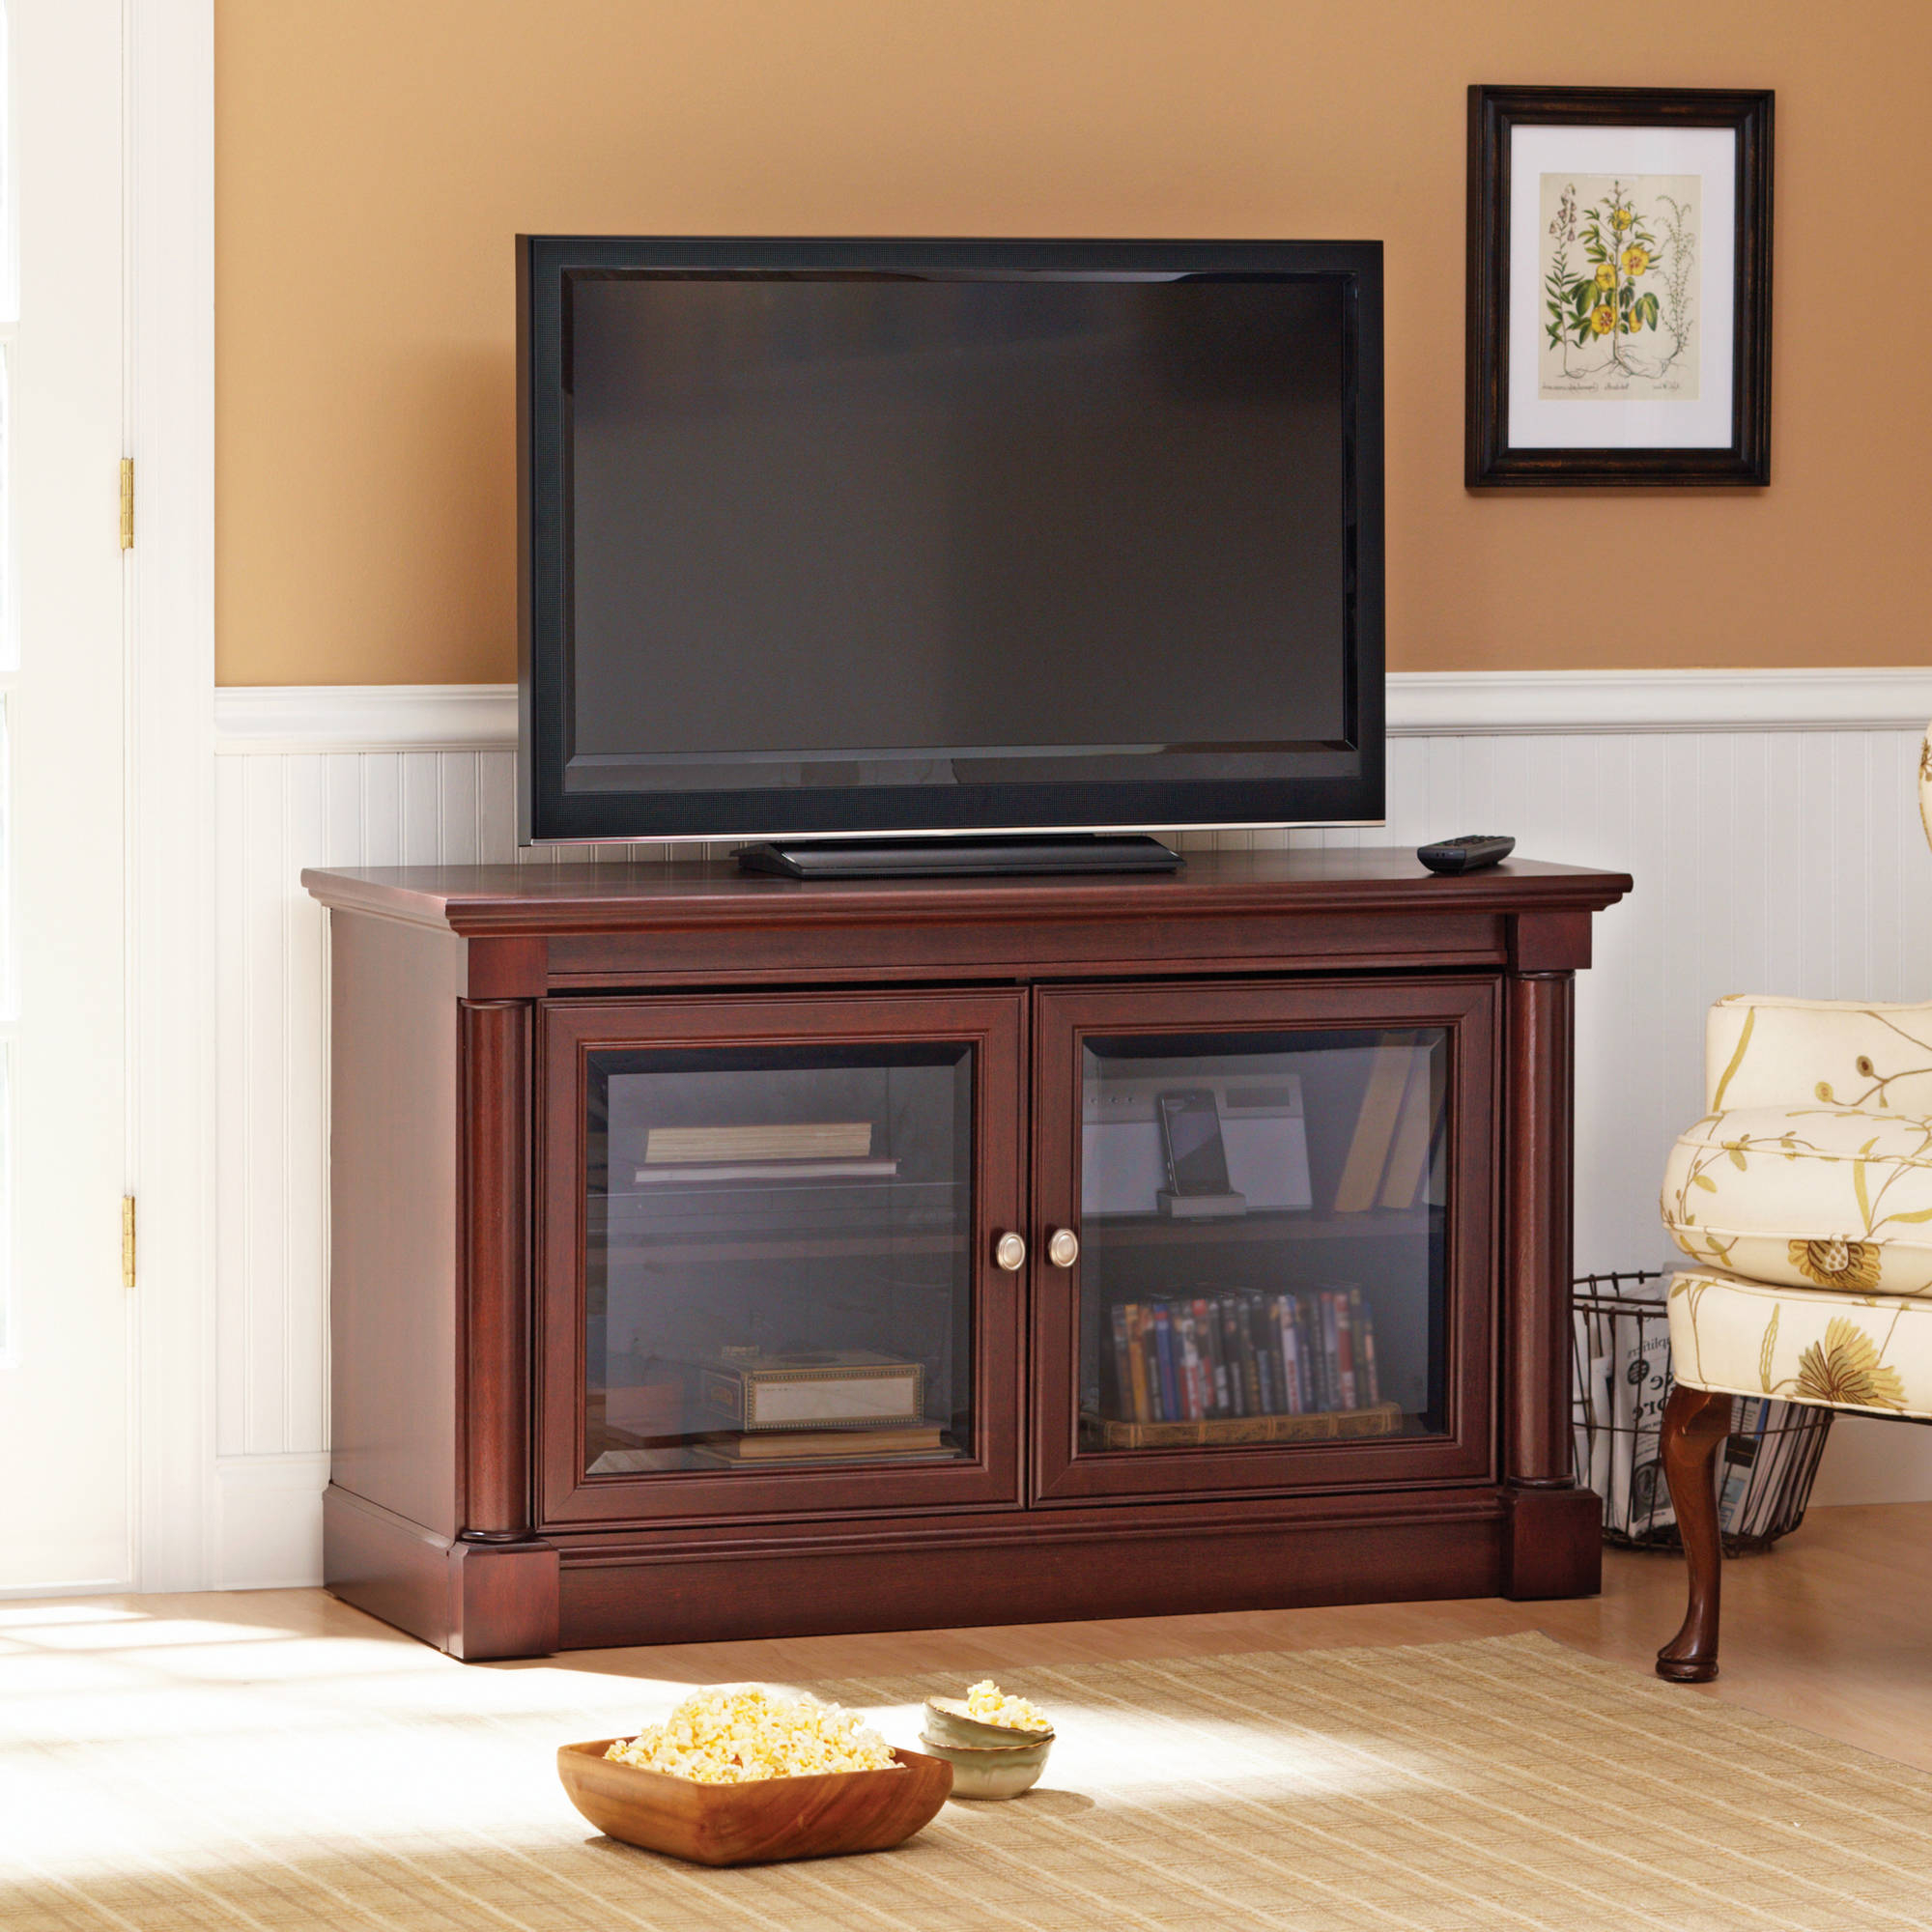 2017 Better Homes & Gardens Ashwood Road Tv Stand For Tvs Up To 47 Inside Cherry Wood Tv Stands (View 11 of 20)